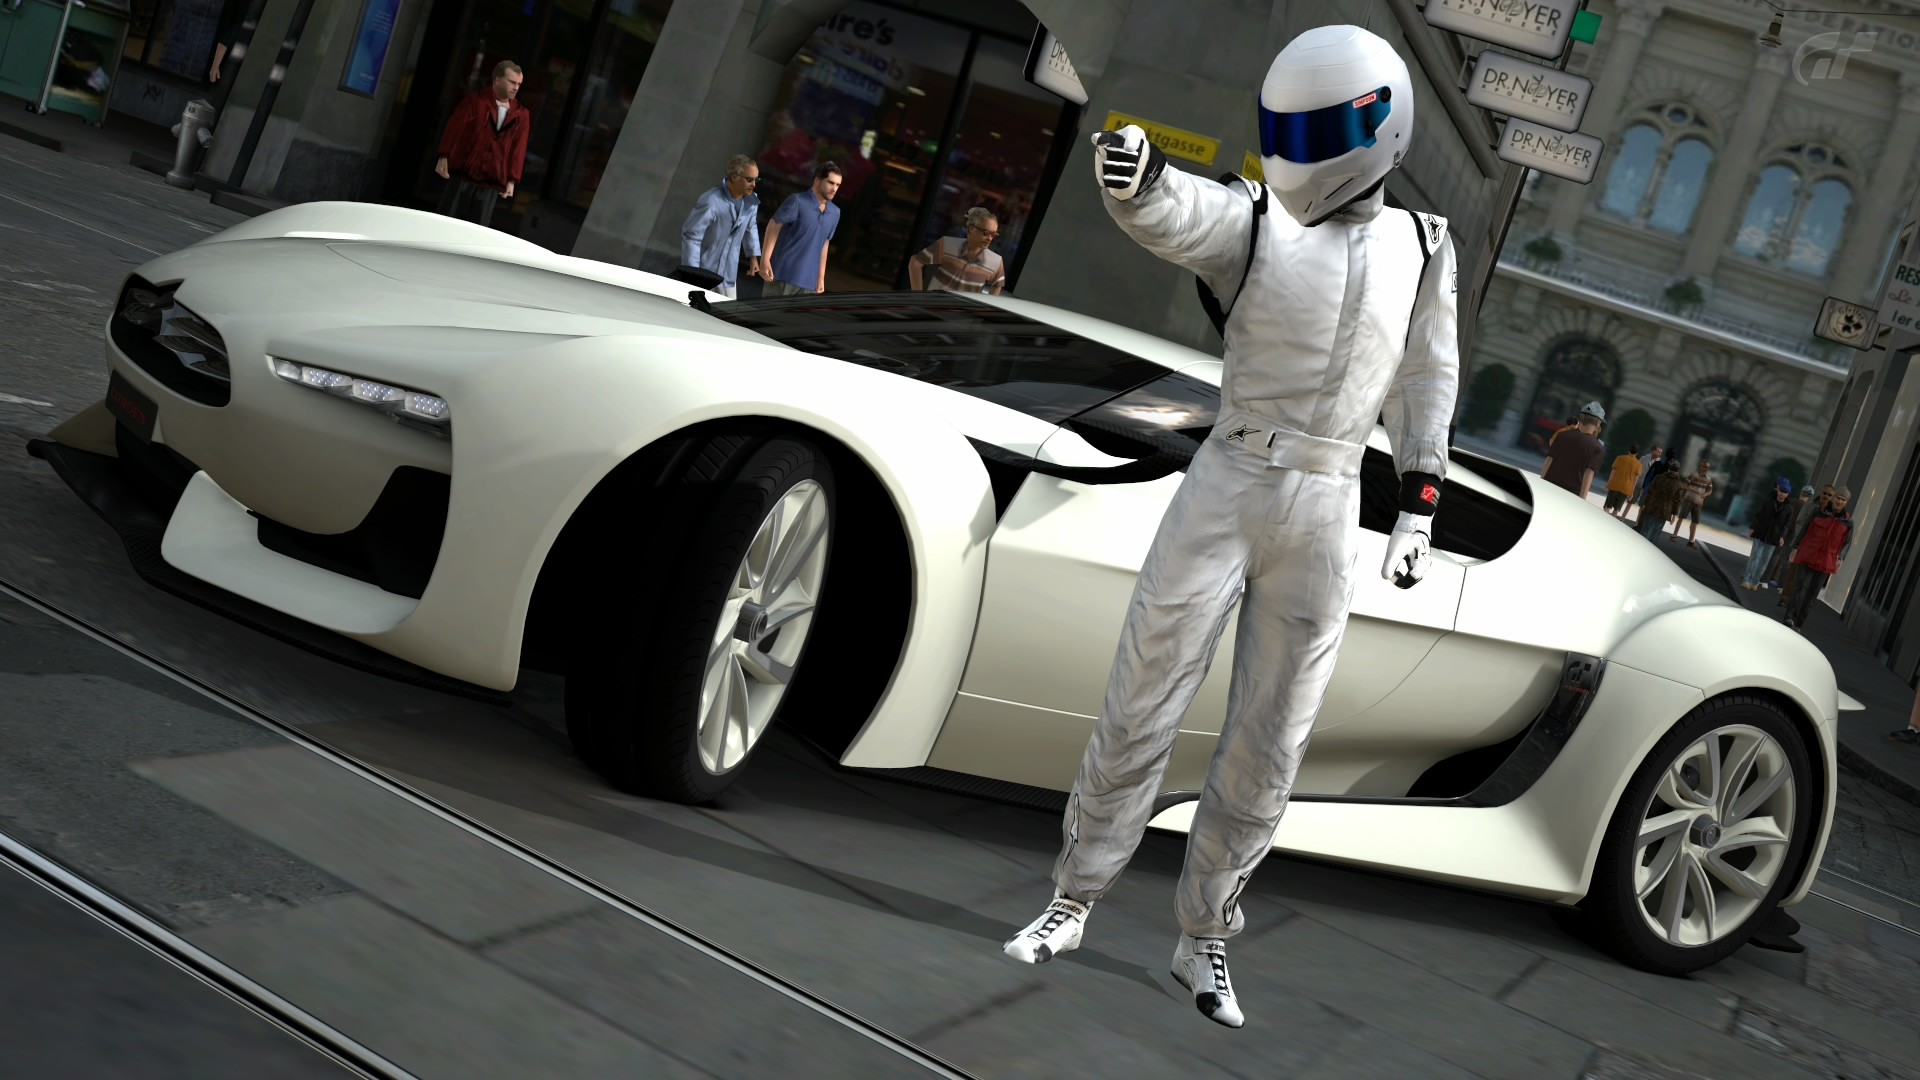 1920x1080 Cars Gran Turismo 5 GT By Citron The Stig Video Games